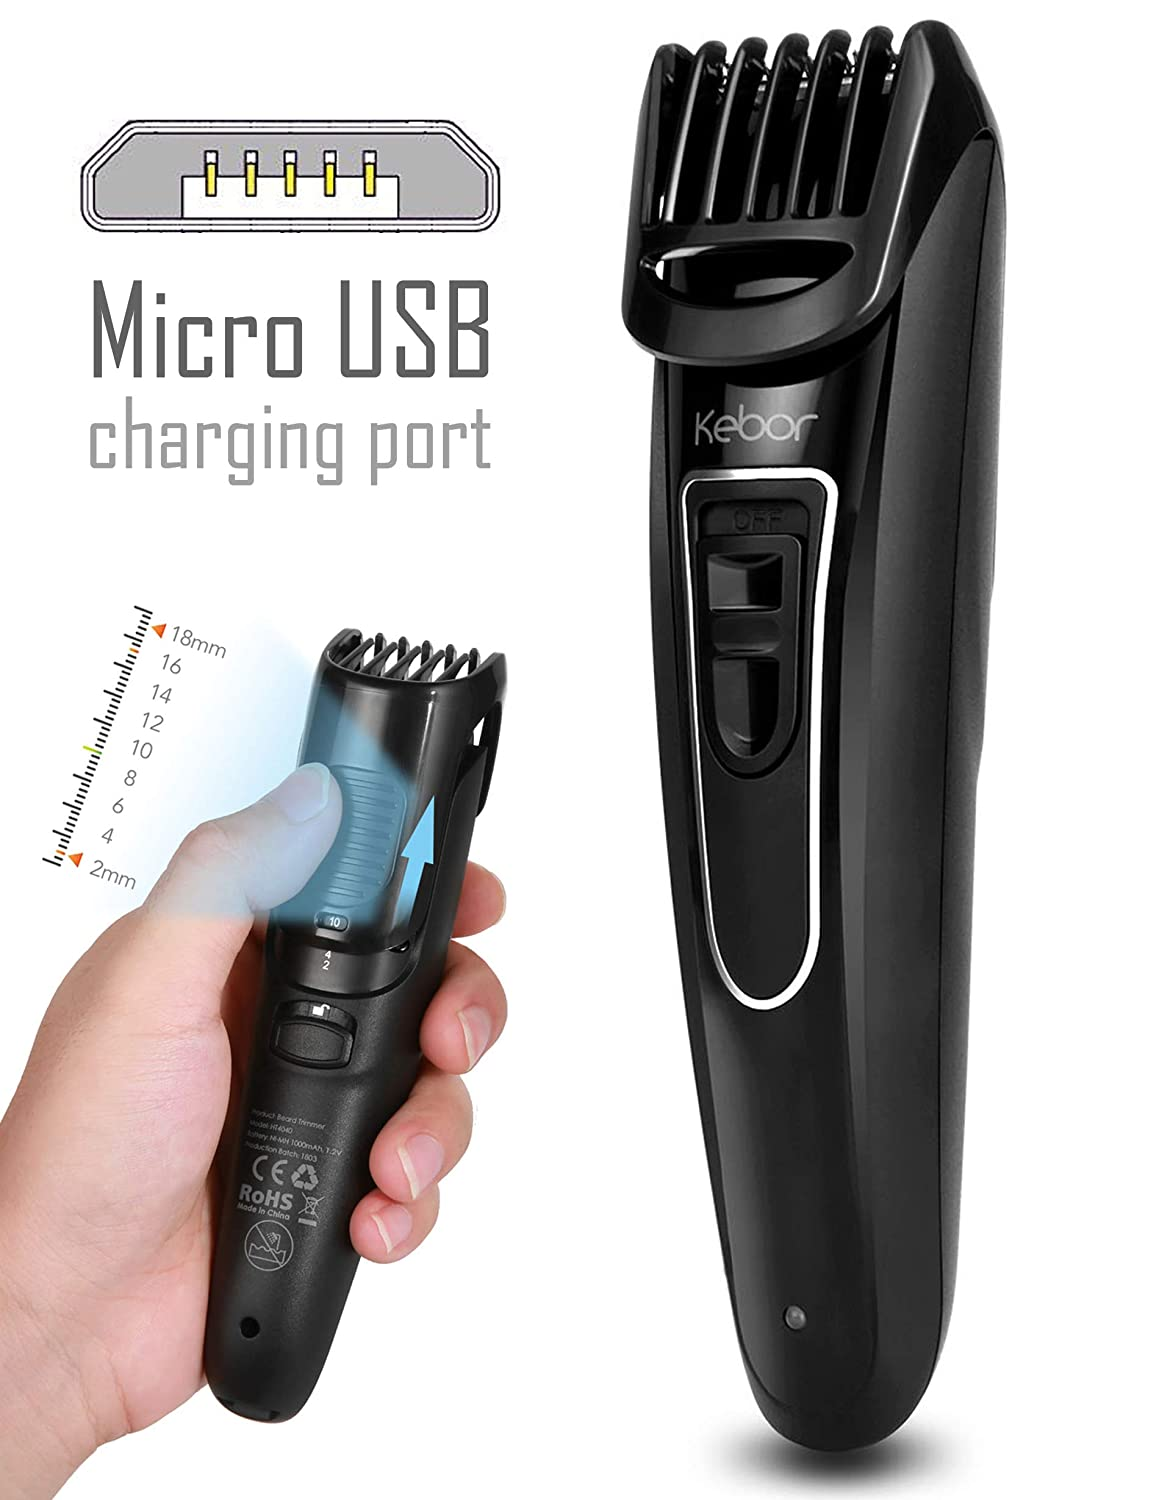 Beard Trimmer for Men, Kebor Hair Grooming Kit Cordless with 9 Length Precision Settings, All-in-one Guard, Comb Lock, Men's Rechargeable via Micro USB Body Groomer 1000mAh HT4040